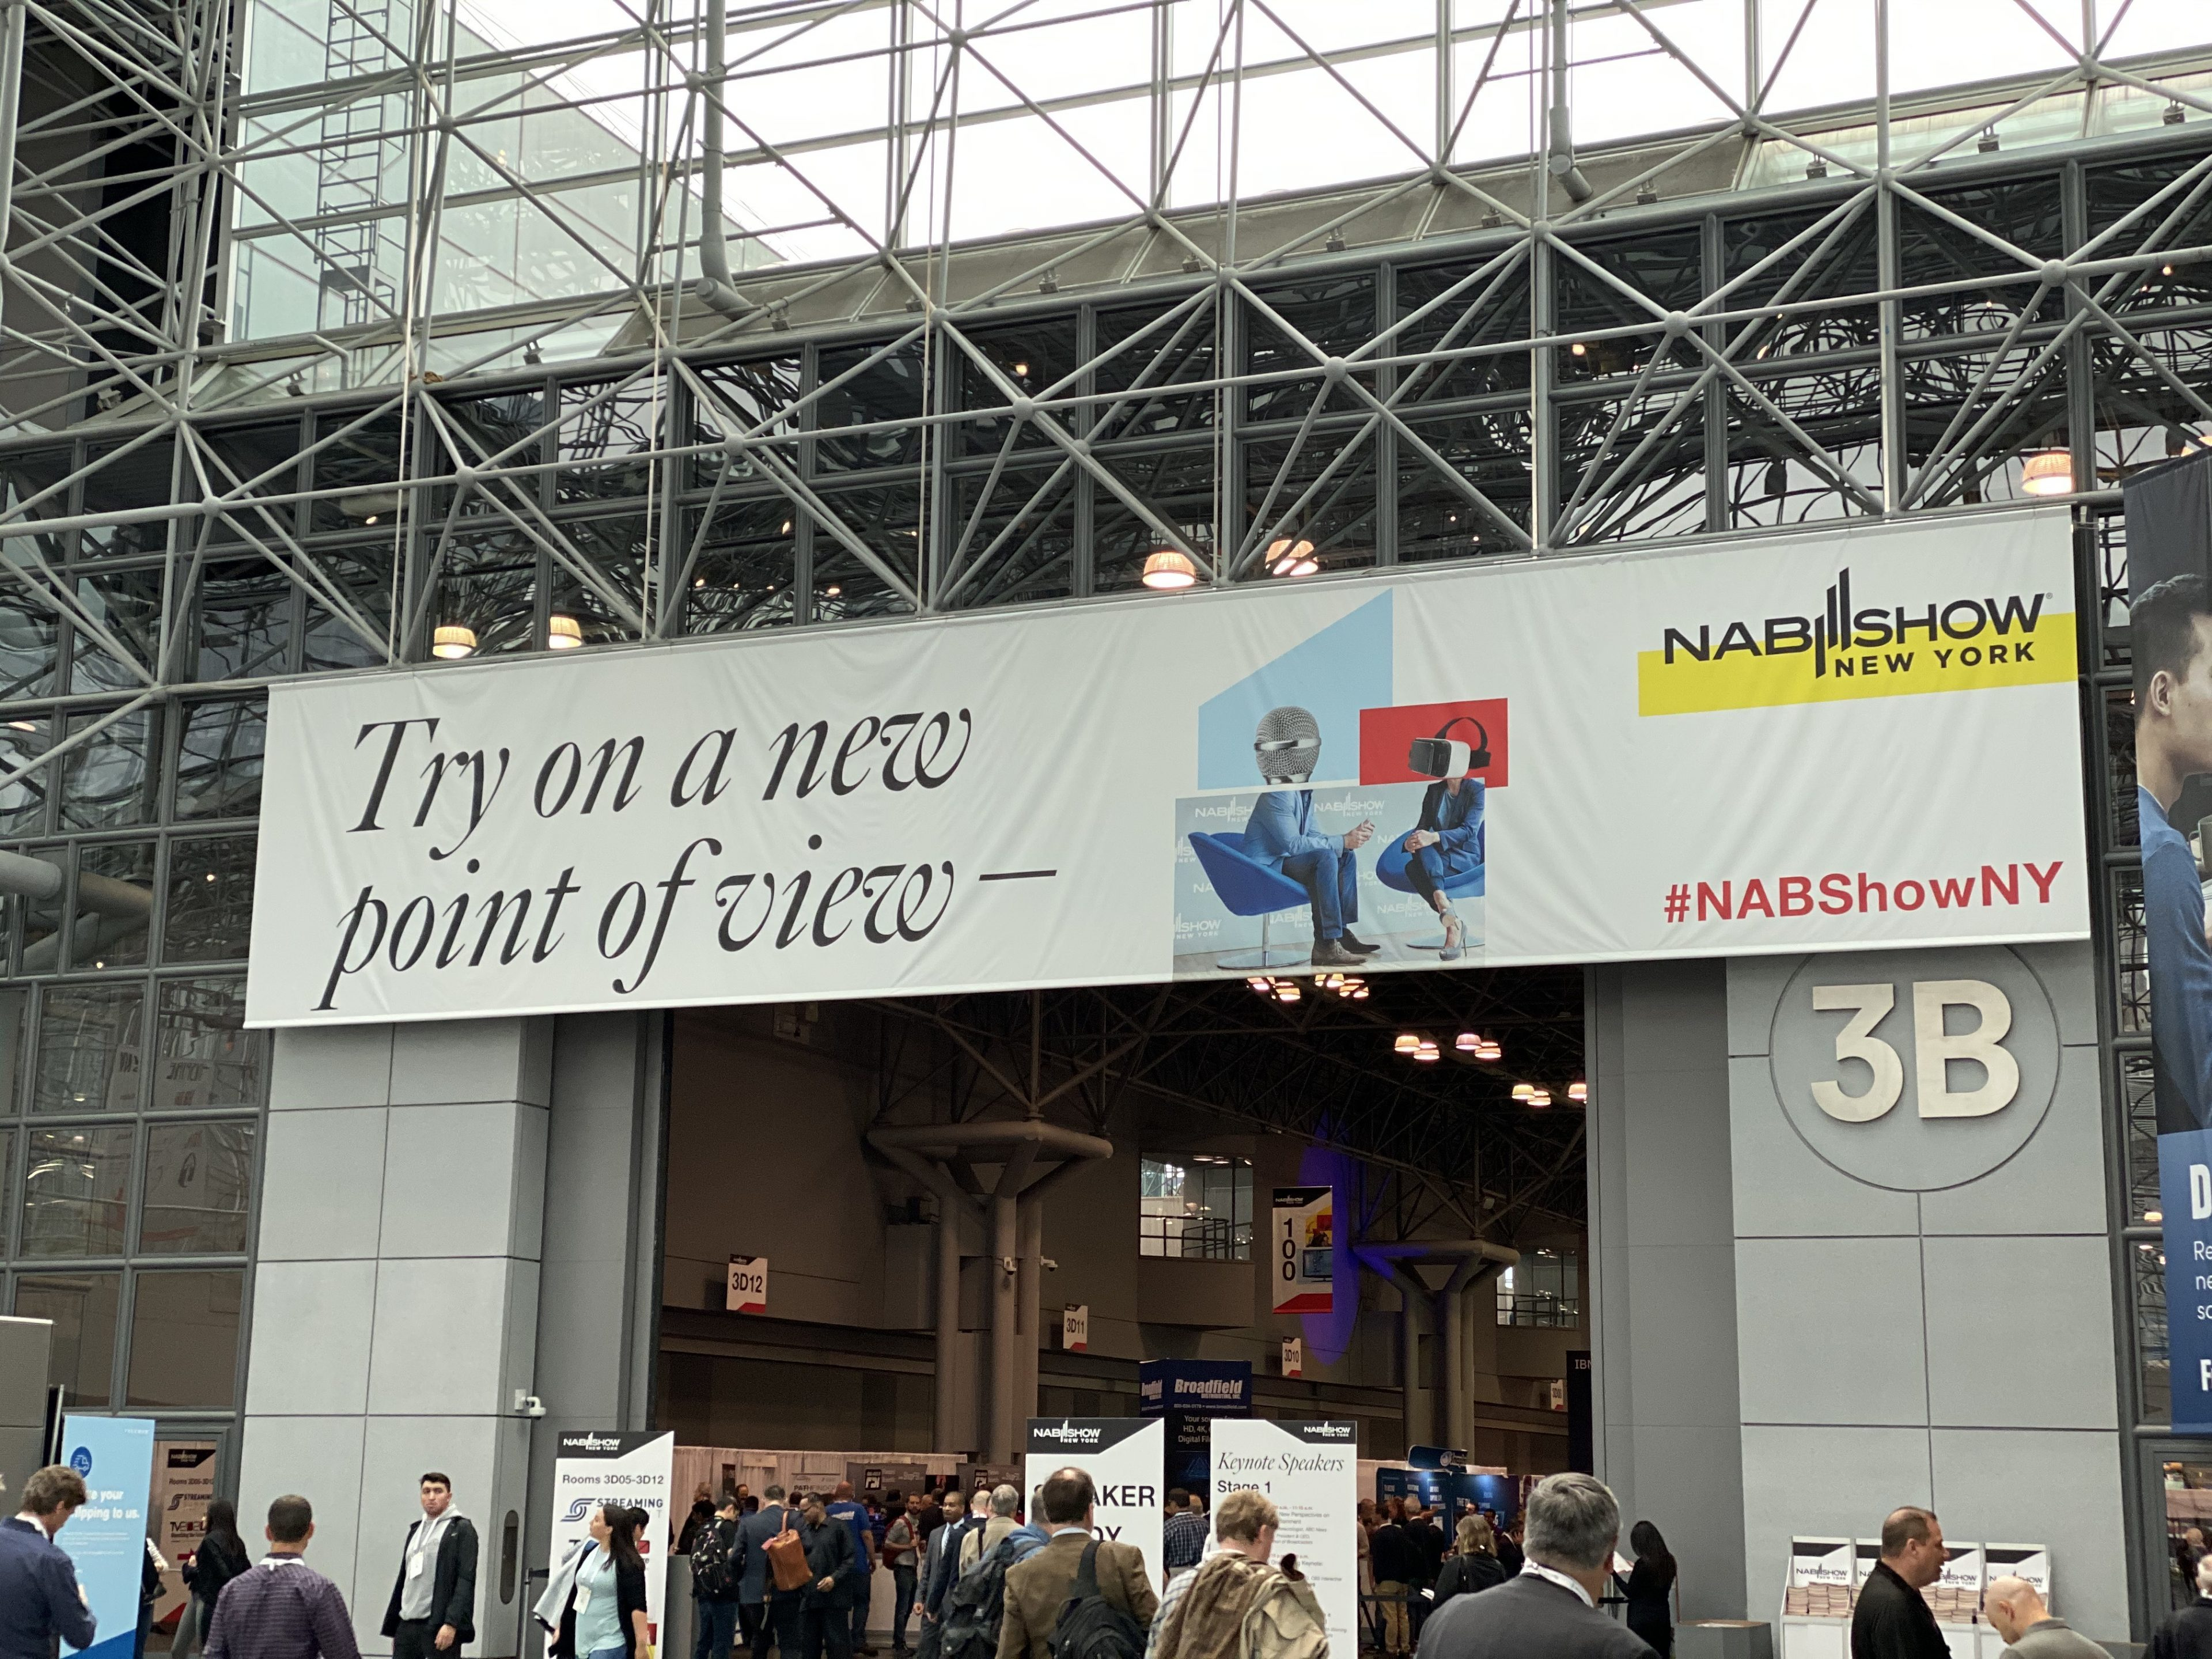 My first time at NAB Show New York 12